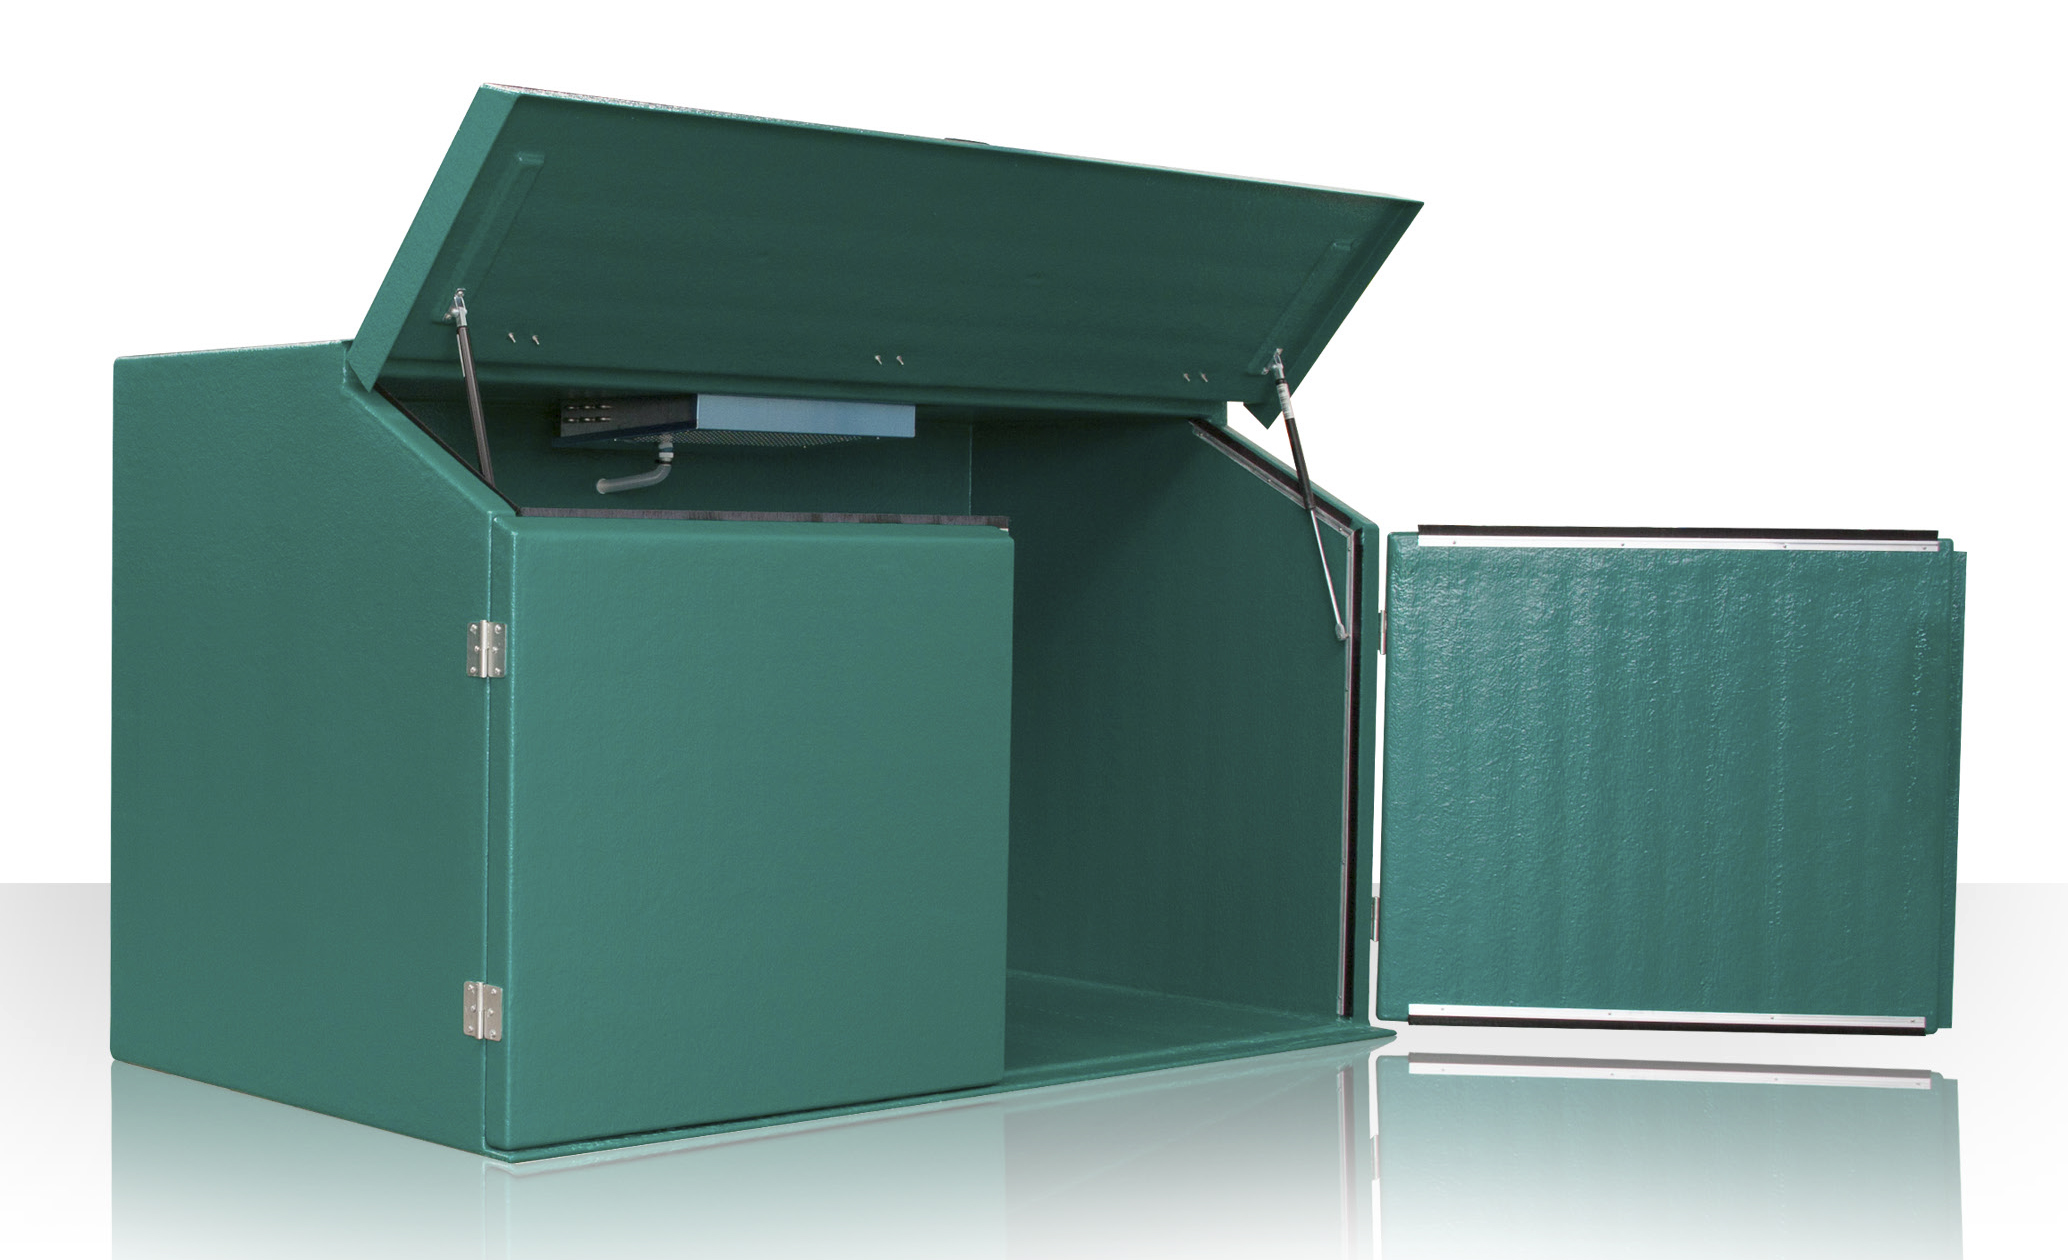 The Euratainer 4LM is designed to hold four standard wheelie bins and to keep the contents at about 6C